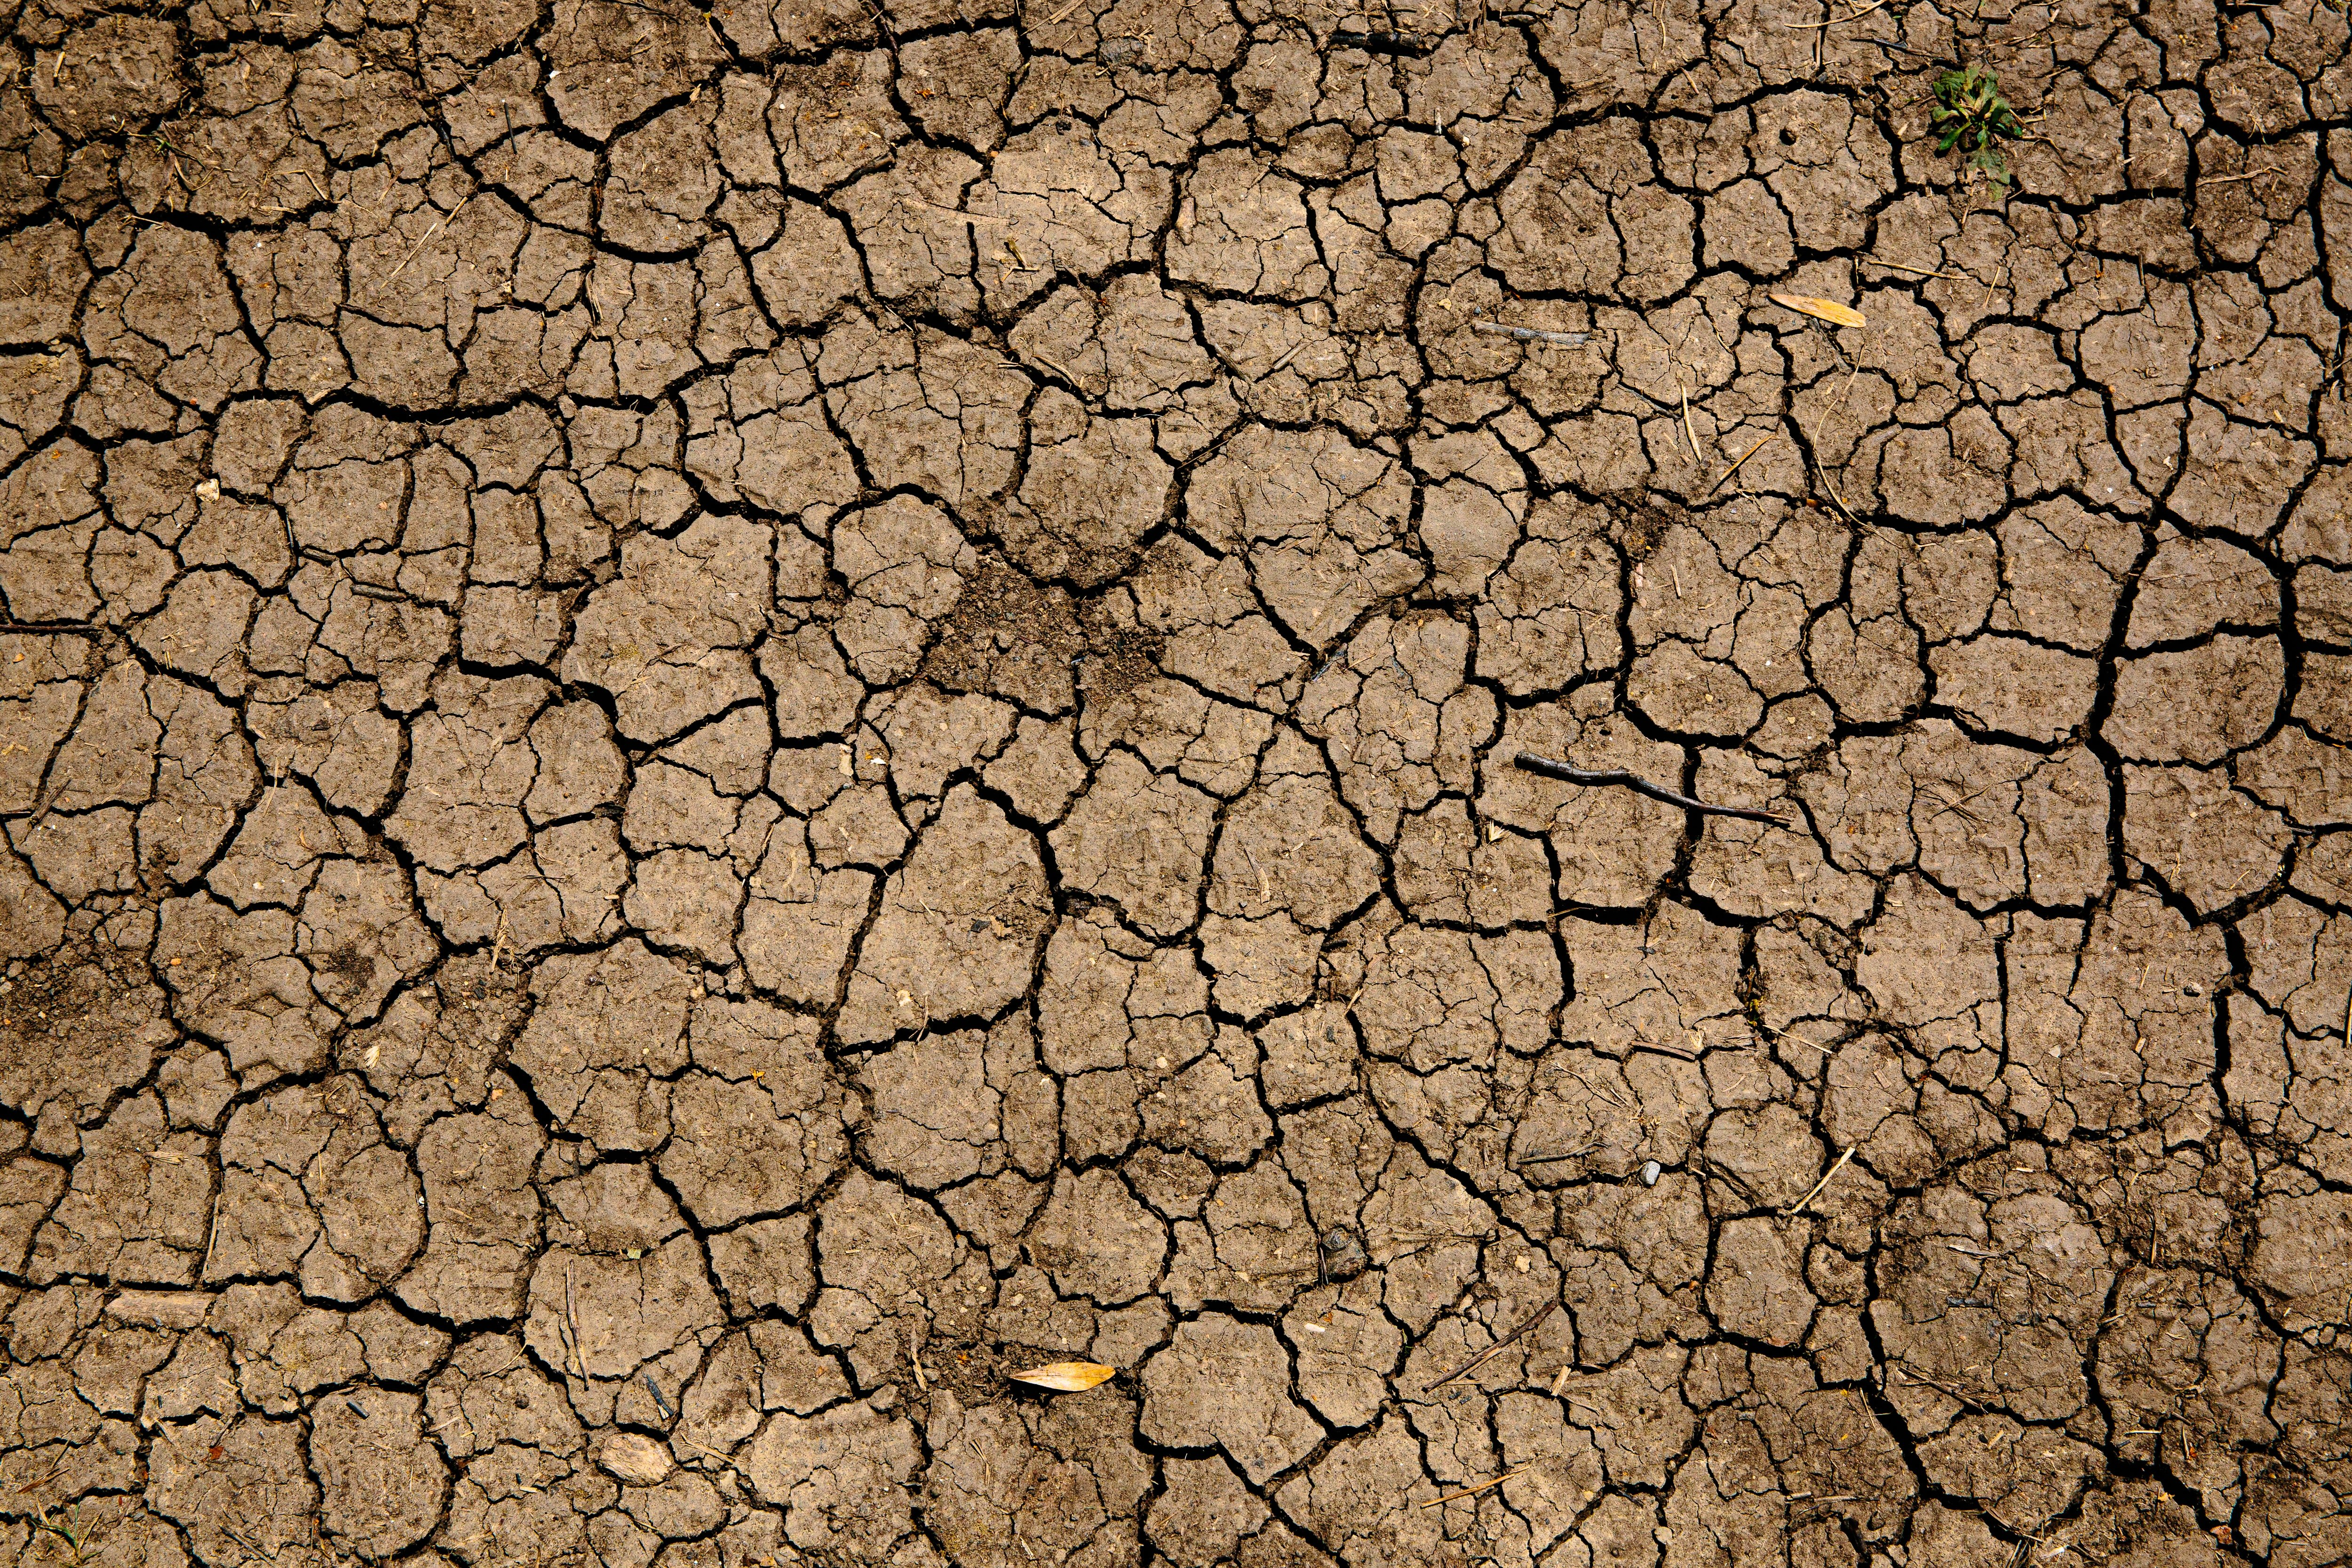 Opportunities Provided by Drought